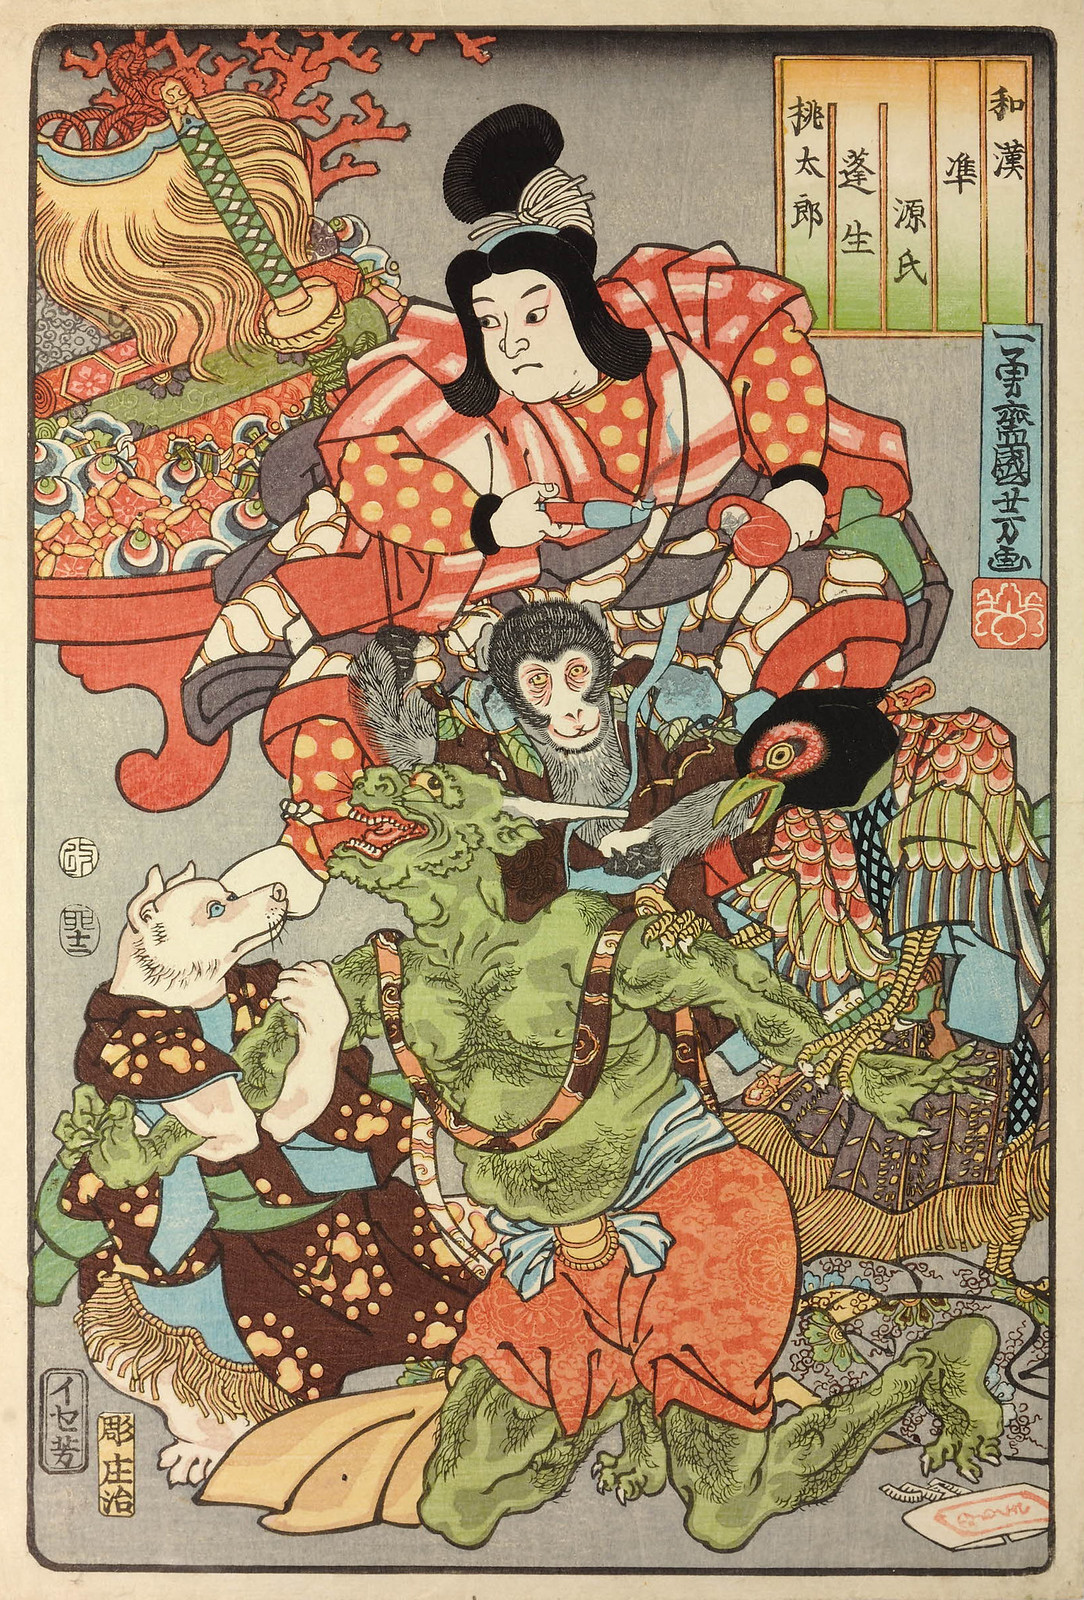 Utagawa Kuniyoshi - Momotaro and his companions the monkey, the badger, and the pheasant, with a captive demon. The 'Five Precious Things' on a stand behind them. 1855